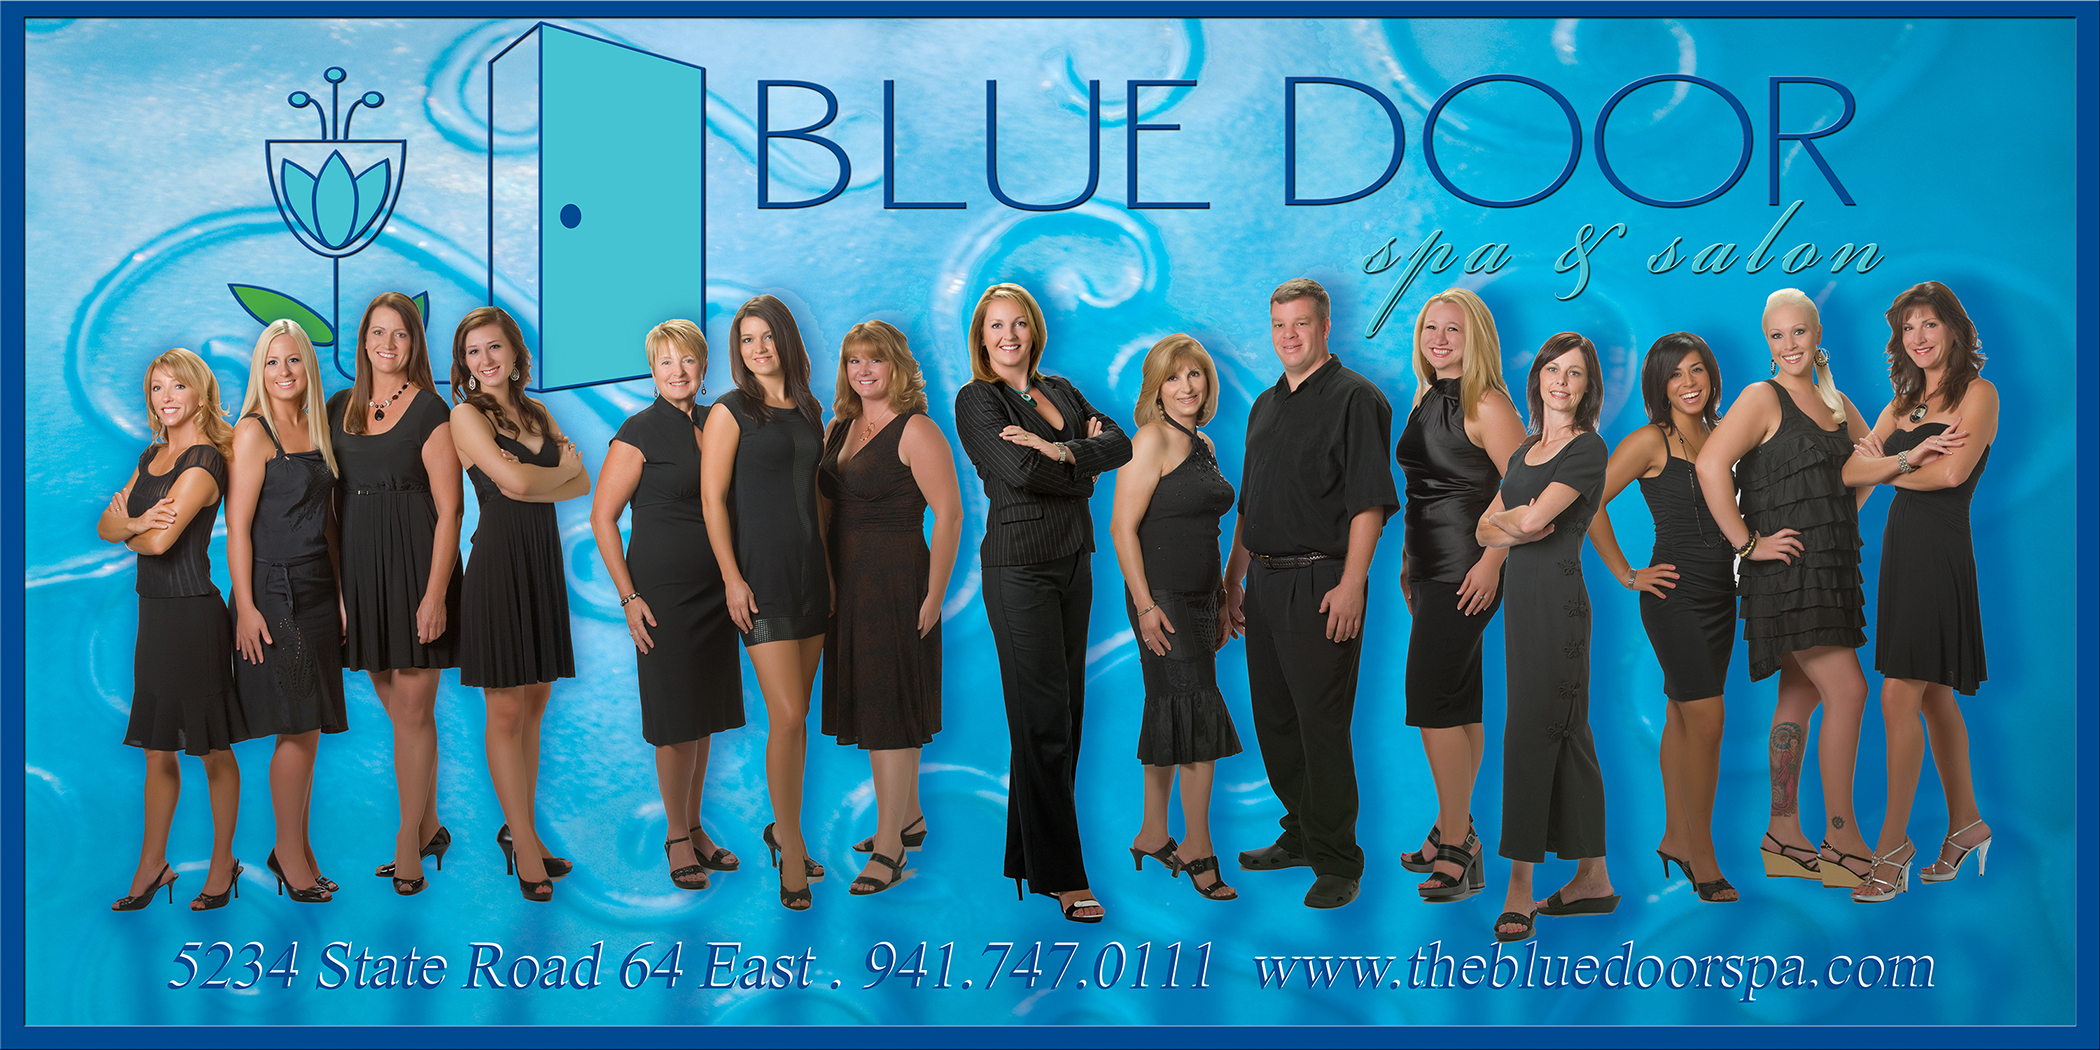 Creative Business Group Portraits, composite business portraits